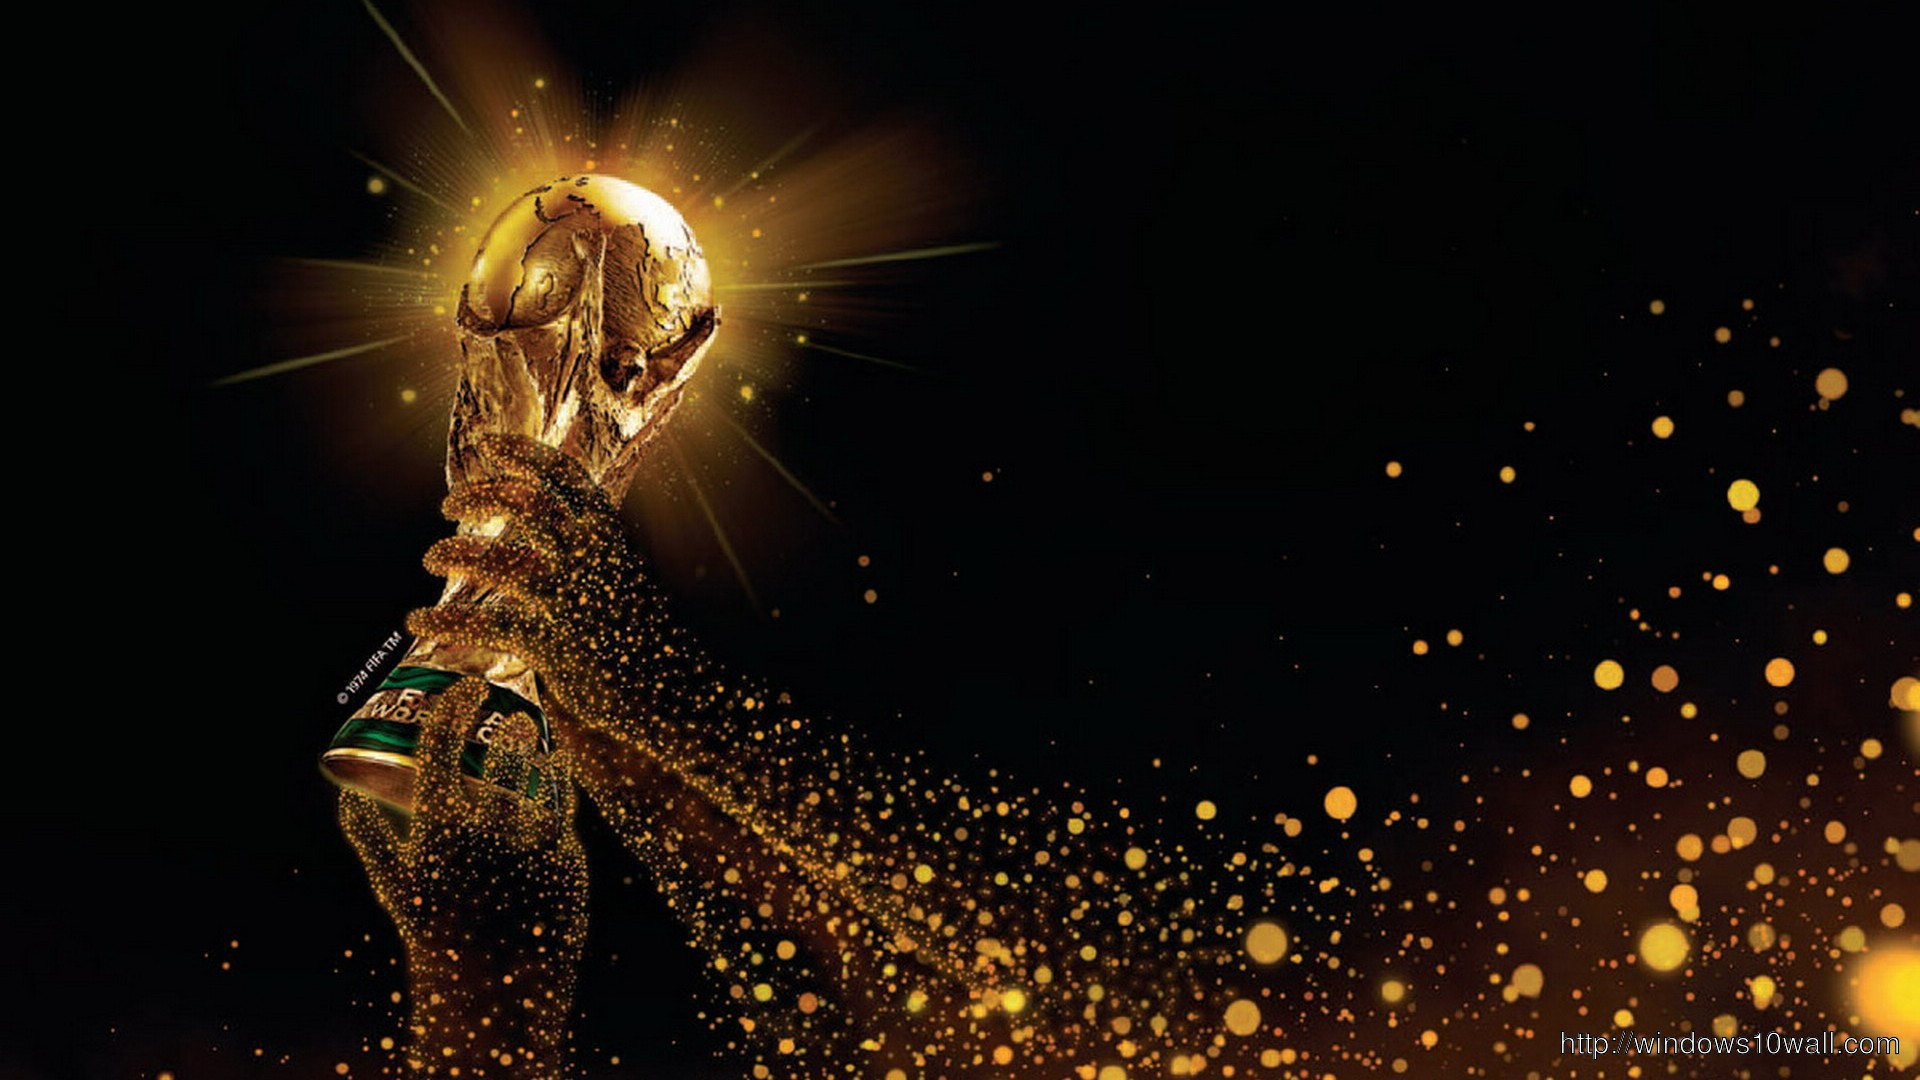 Fifa World Cup Trophy 2014 Background Wallpaper Windows